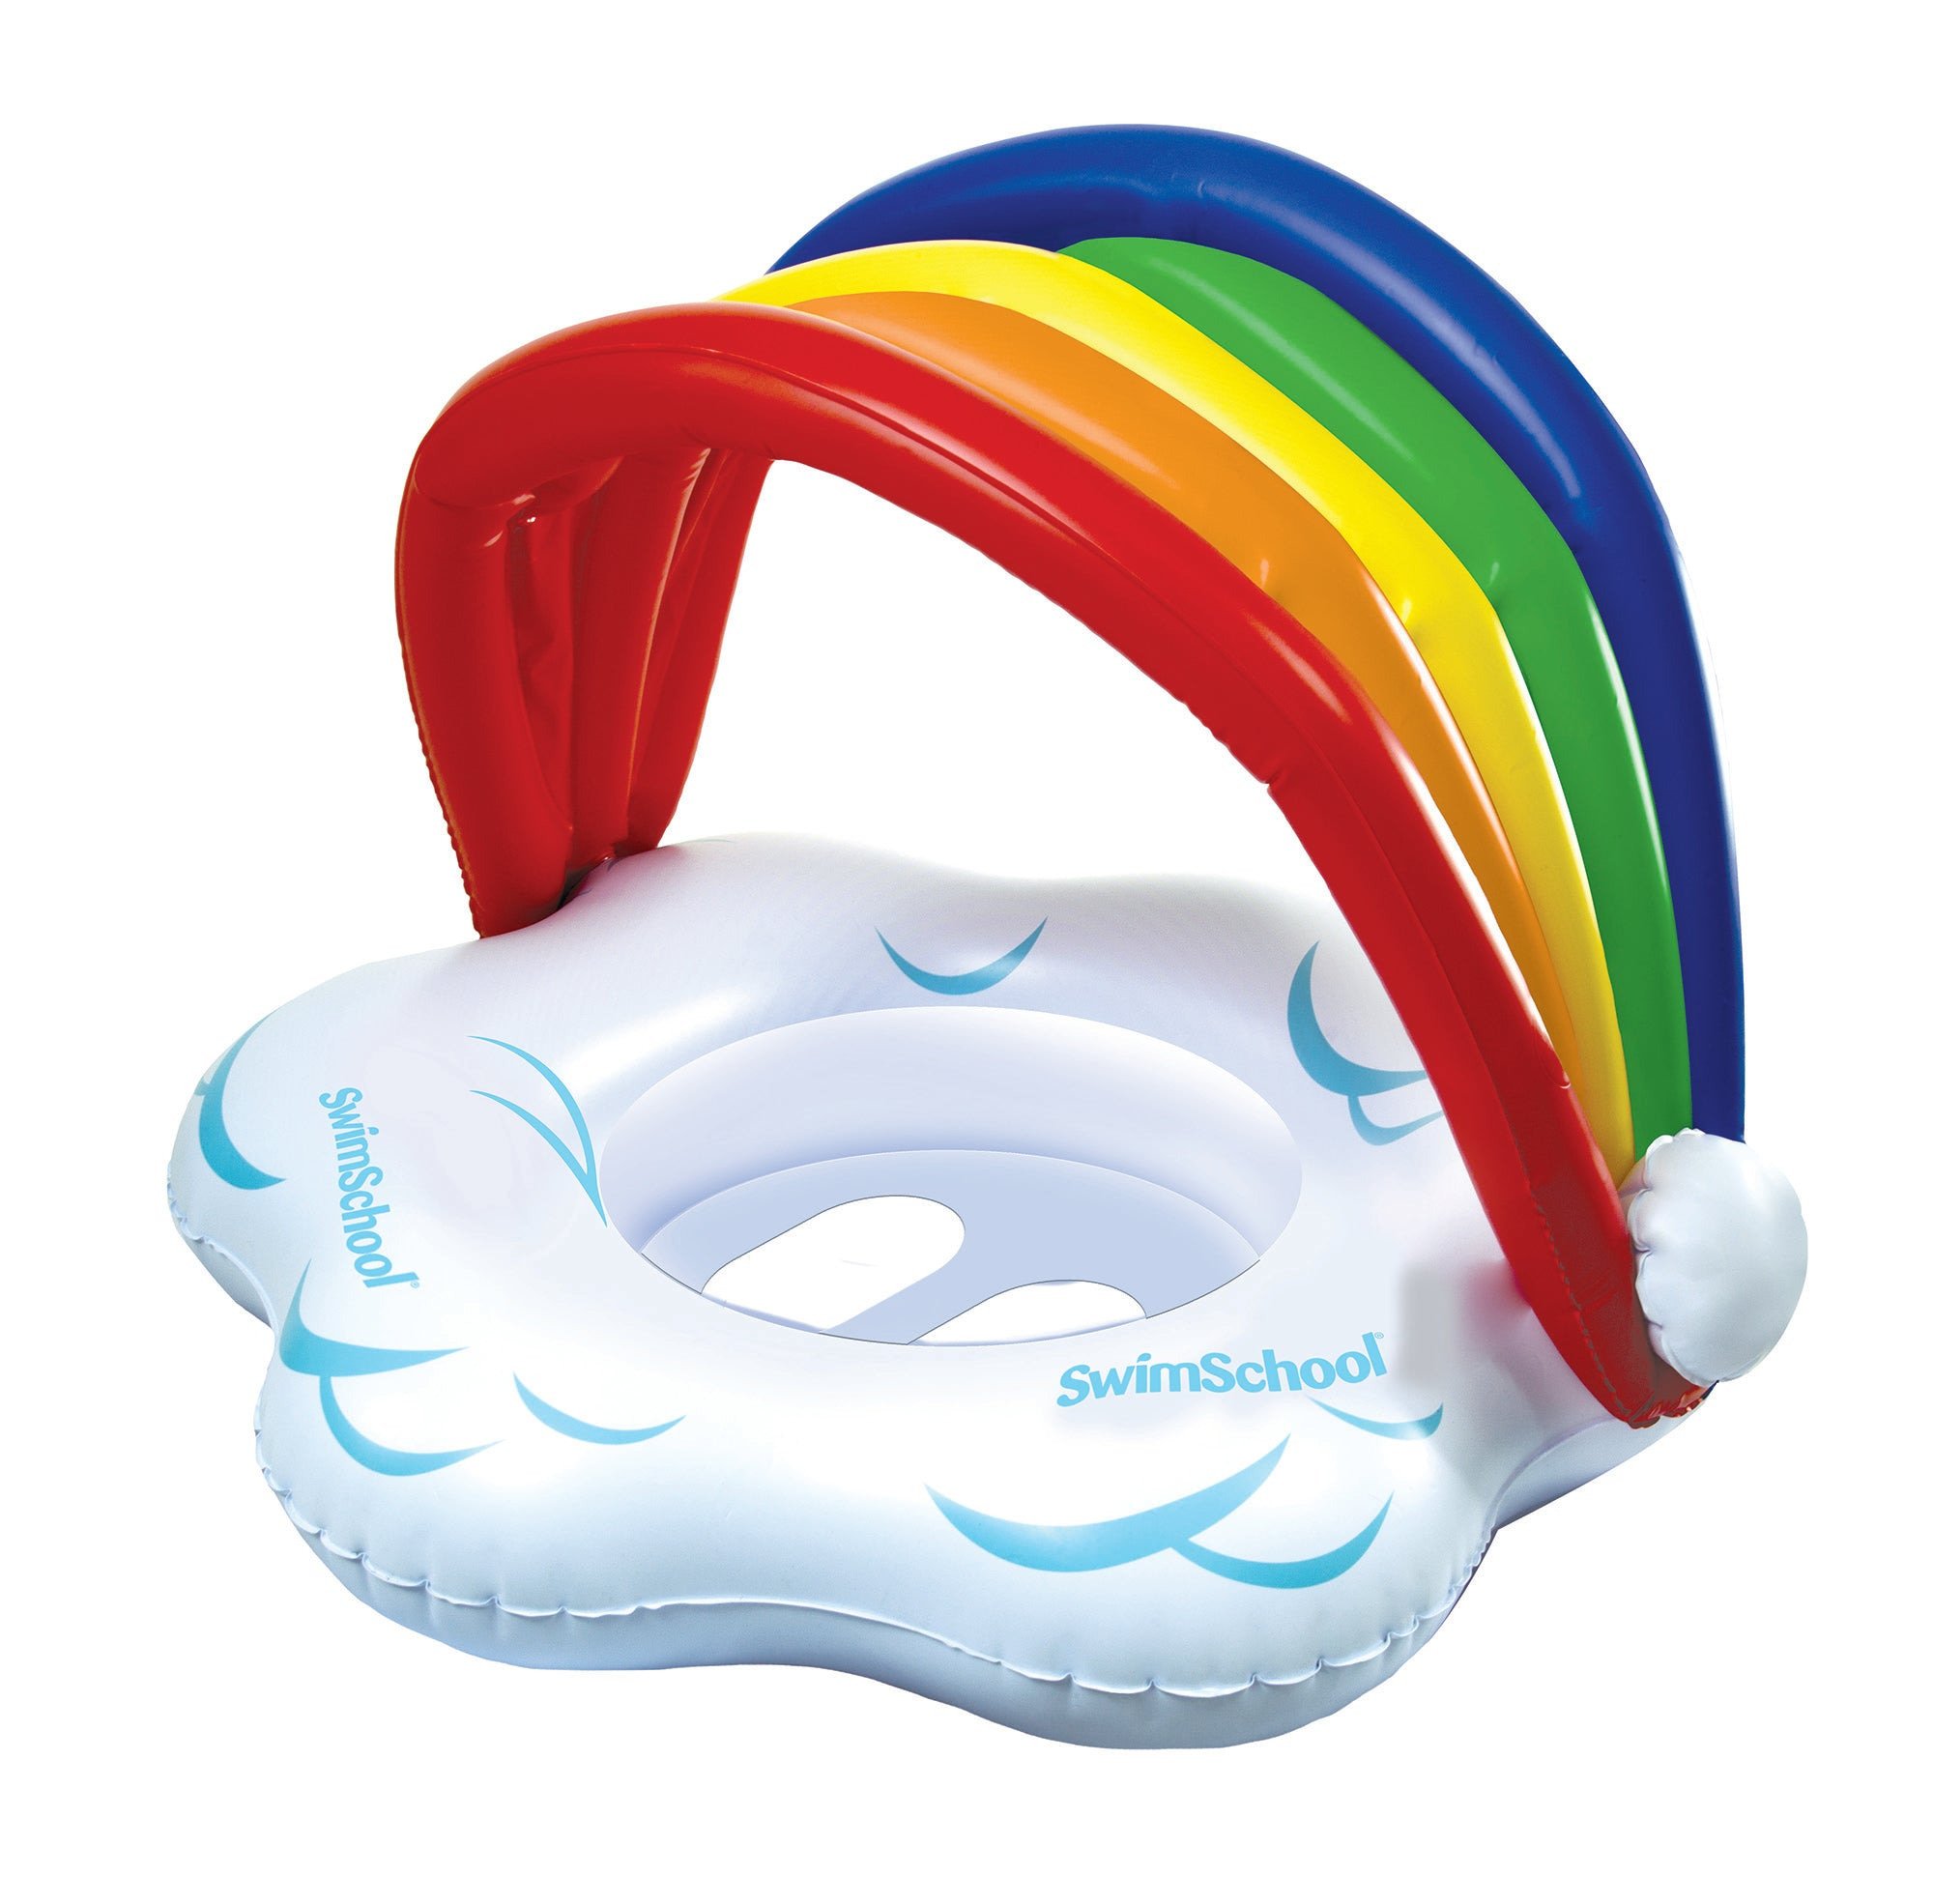 My Rainbow BabyBoat® with Adjustable Seat & Sunshade